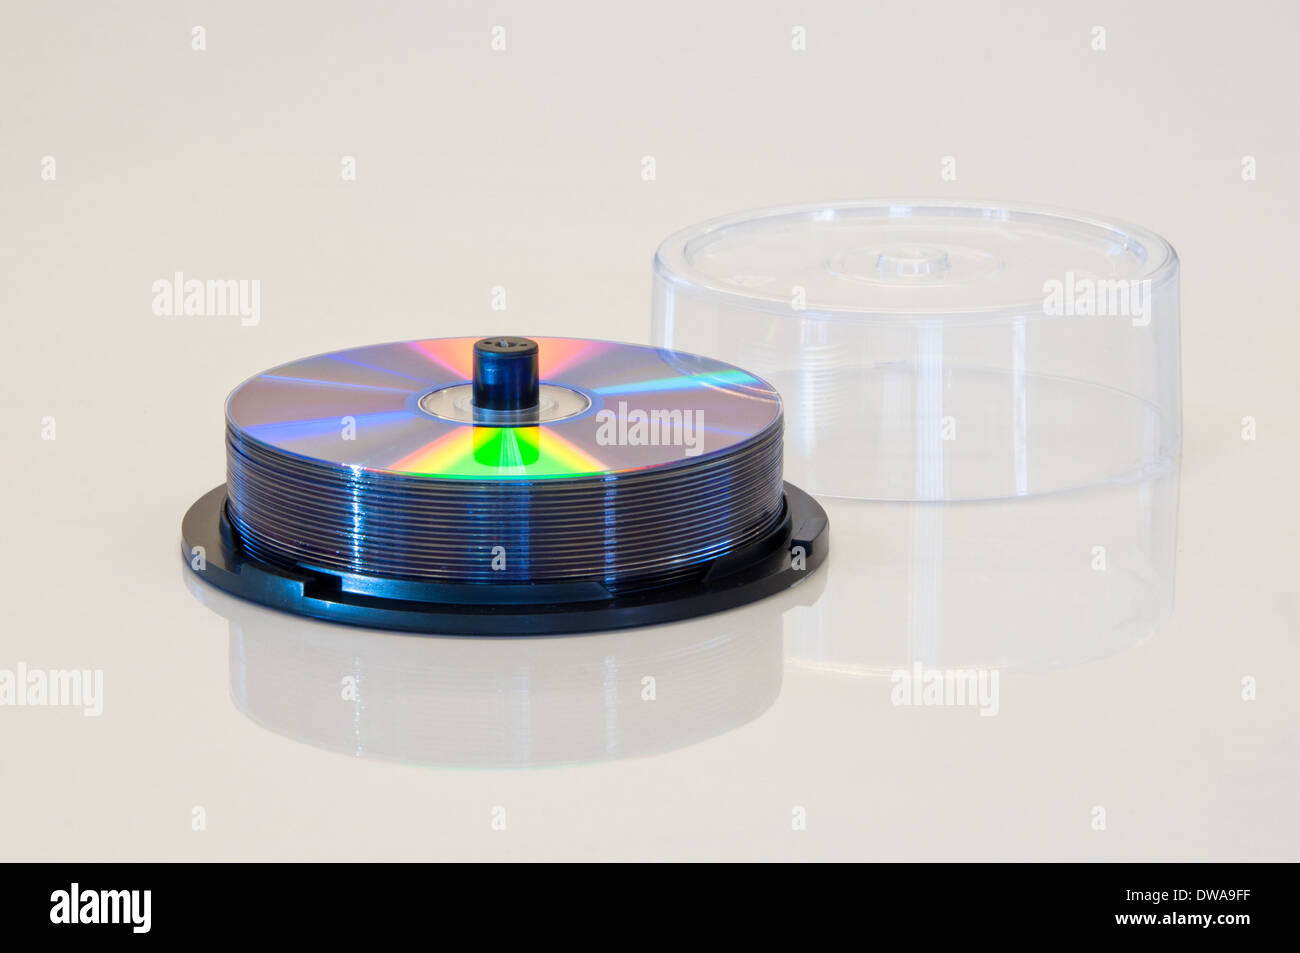 Spindle of DVD or CD discs with clear lid off - Stock Image